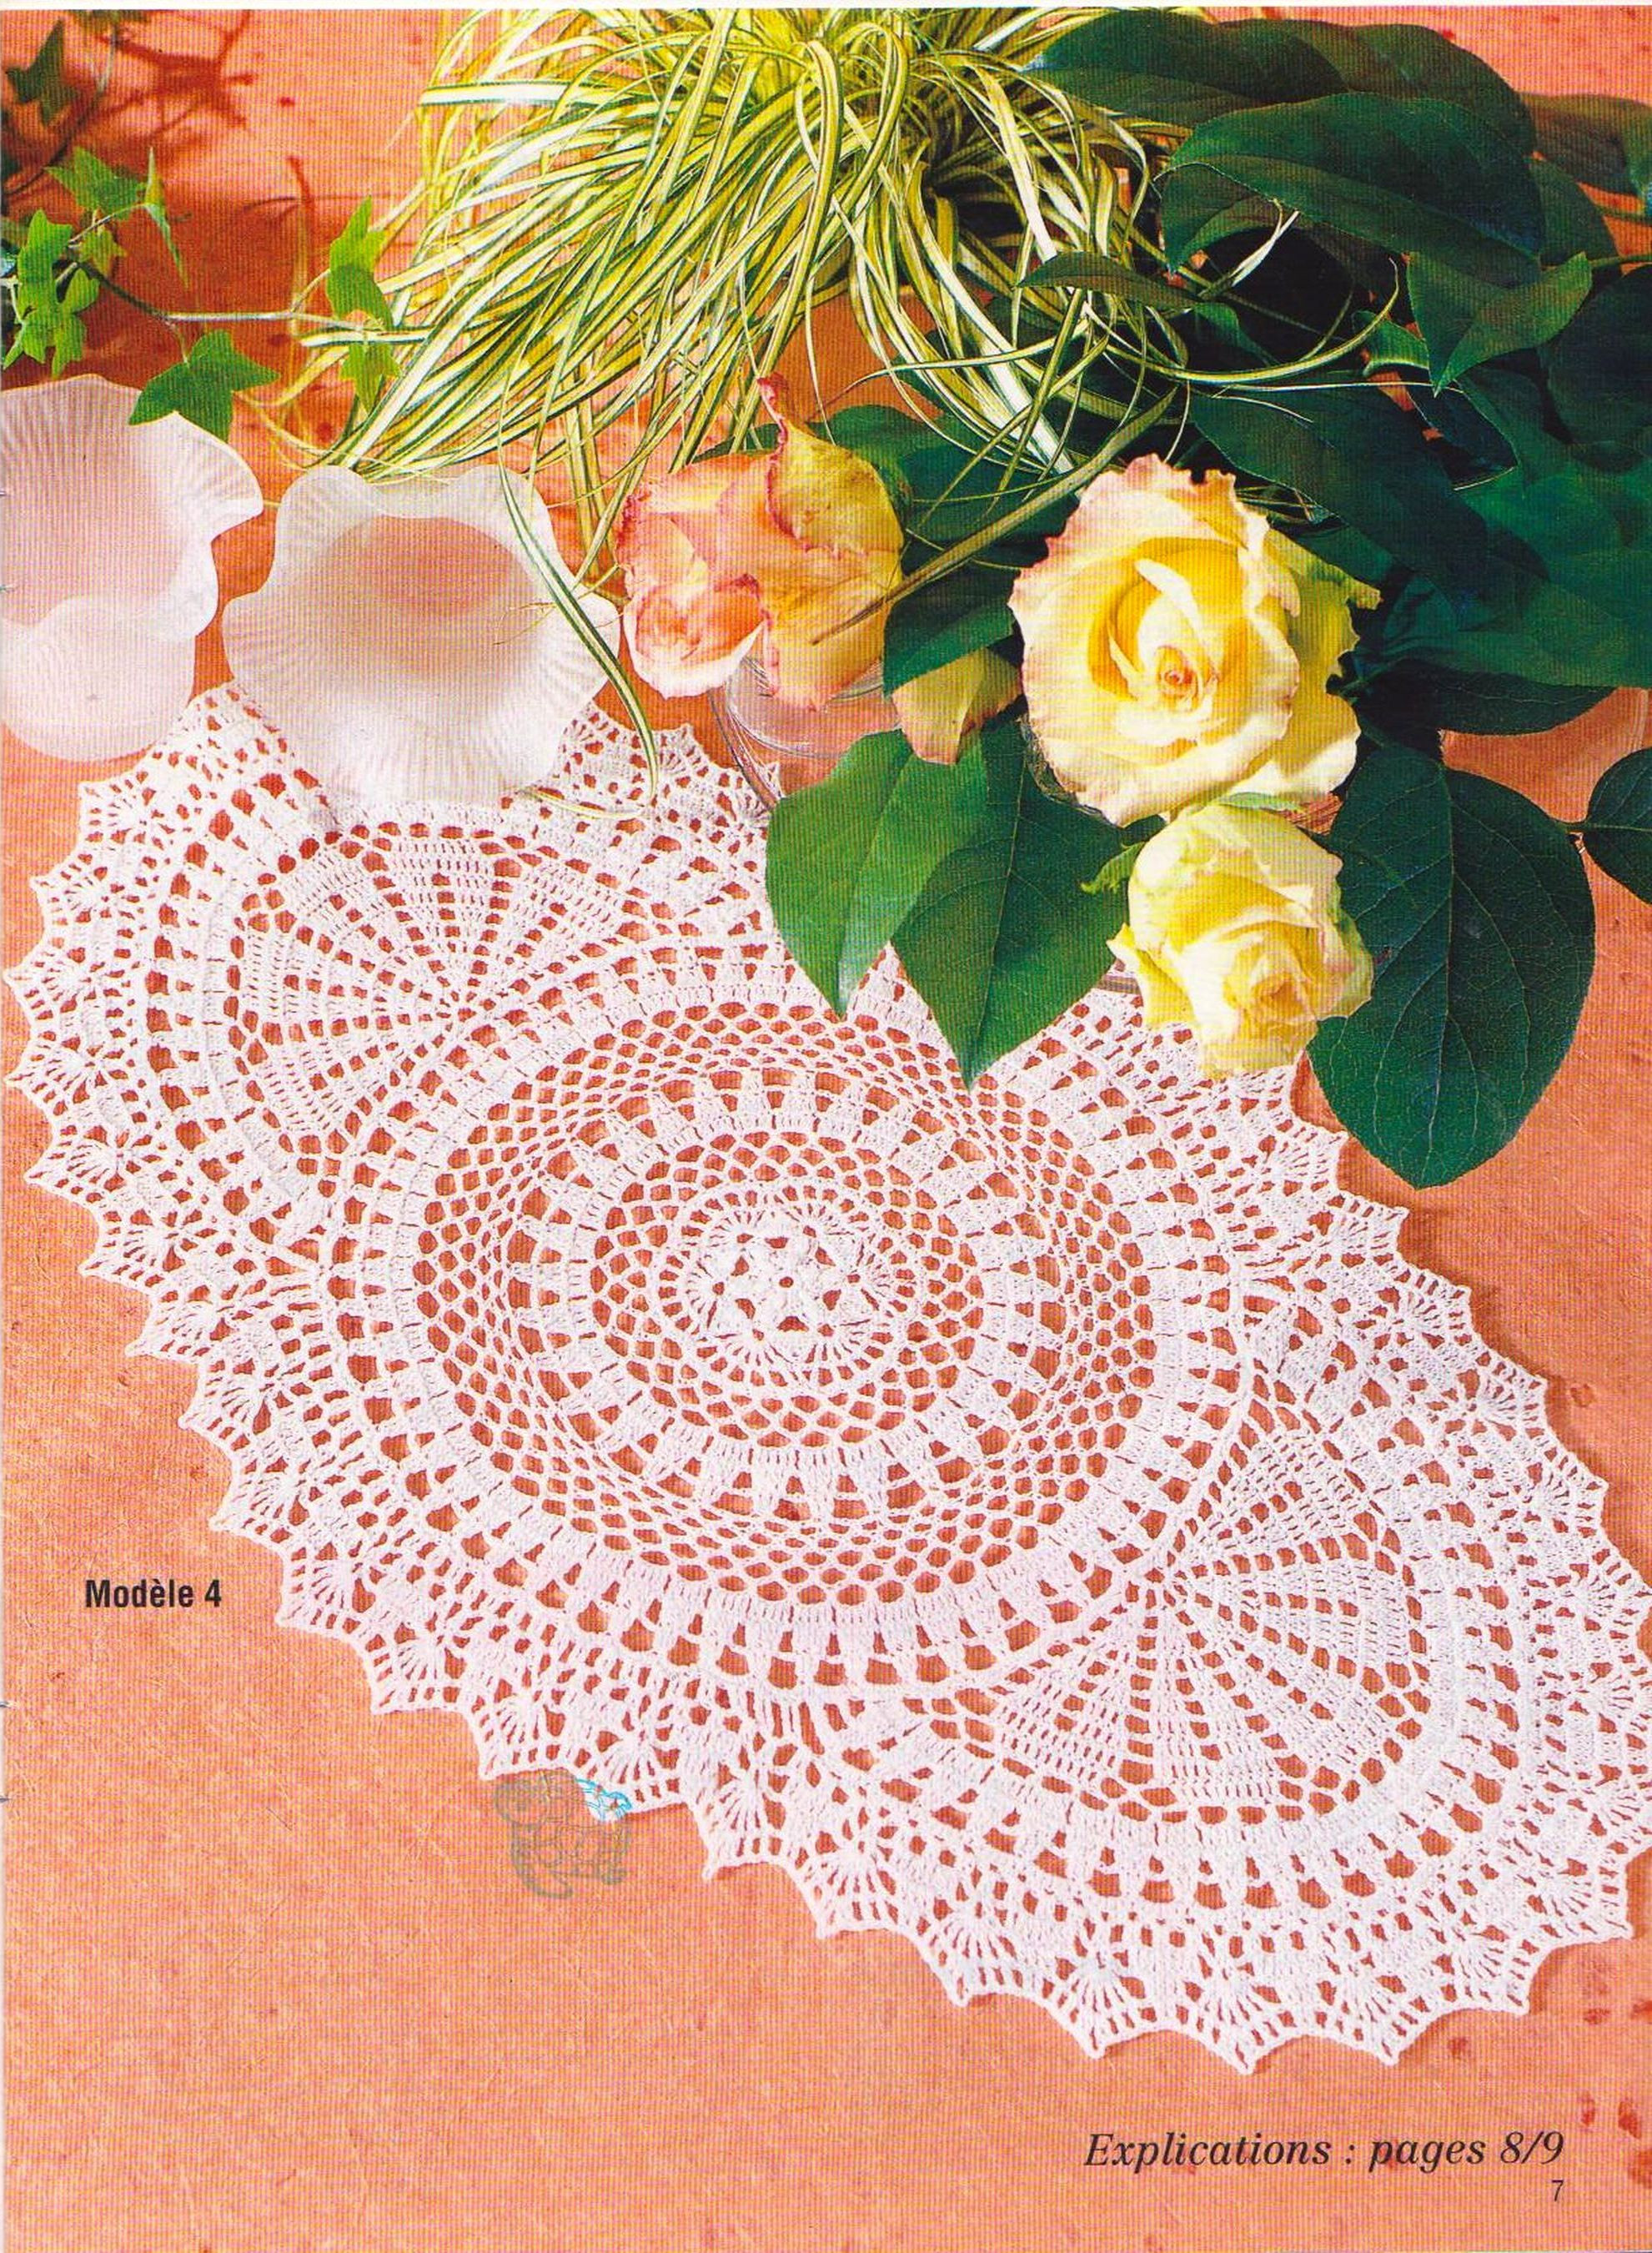 Crochet Doilies Beautiful Circle Oval Crochet Doily Pattern ⋆ Crochet Kingdom Of Incredible 43 Ideas Crochet Doilies